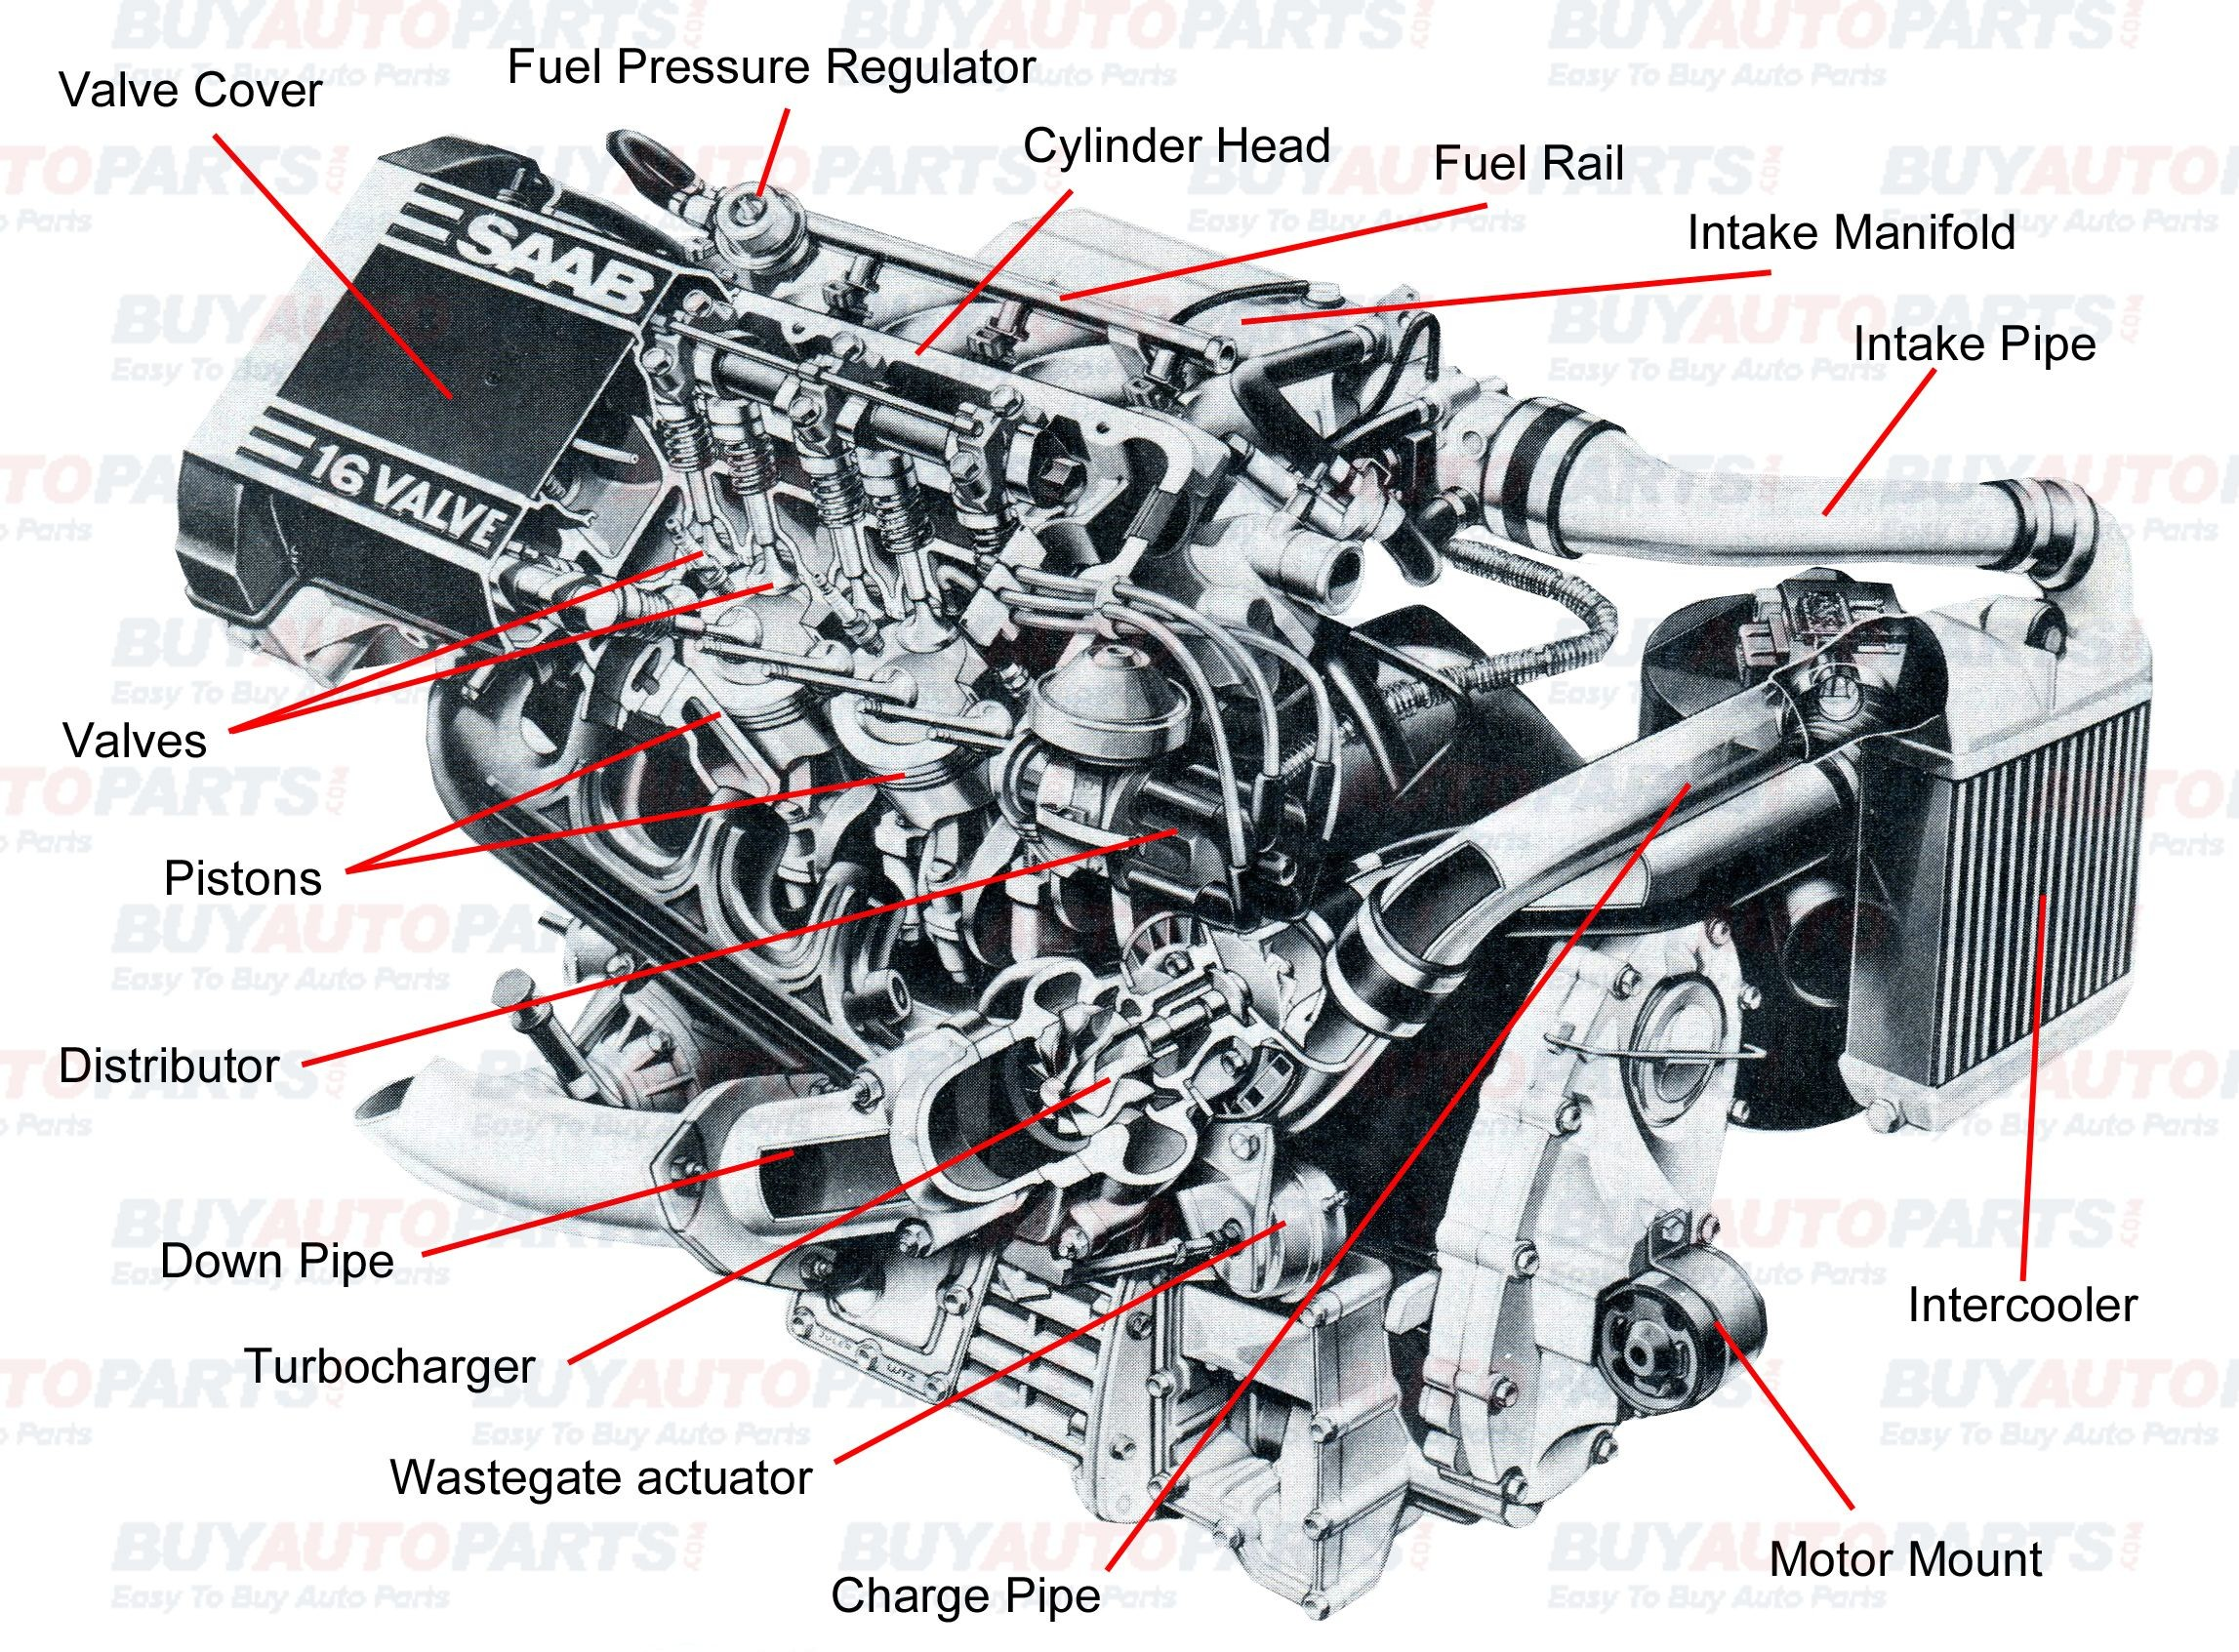 Parts Of A Car Body Diagram Pin by Jimmiejanet Testellamwfz On What Does An Engine with Of Parts Of A Car Body Diagram